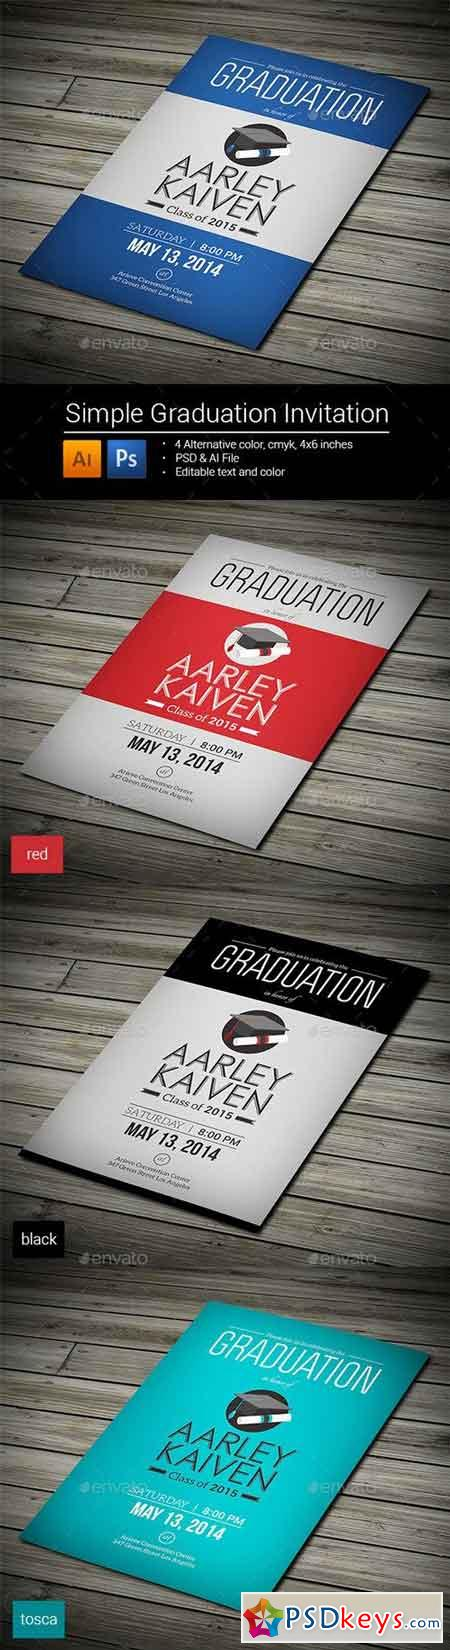 Simple Graduation Invitation 8993243